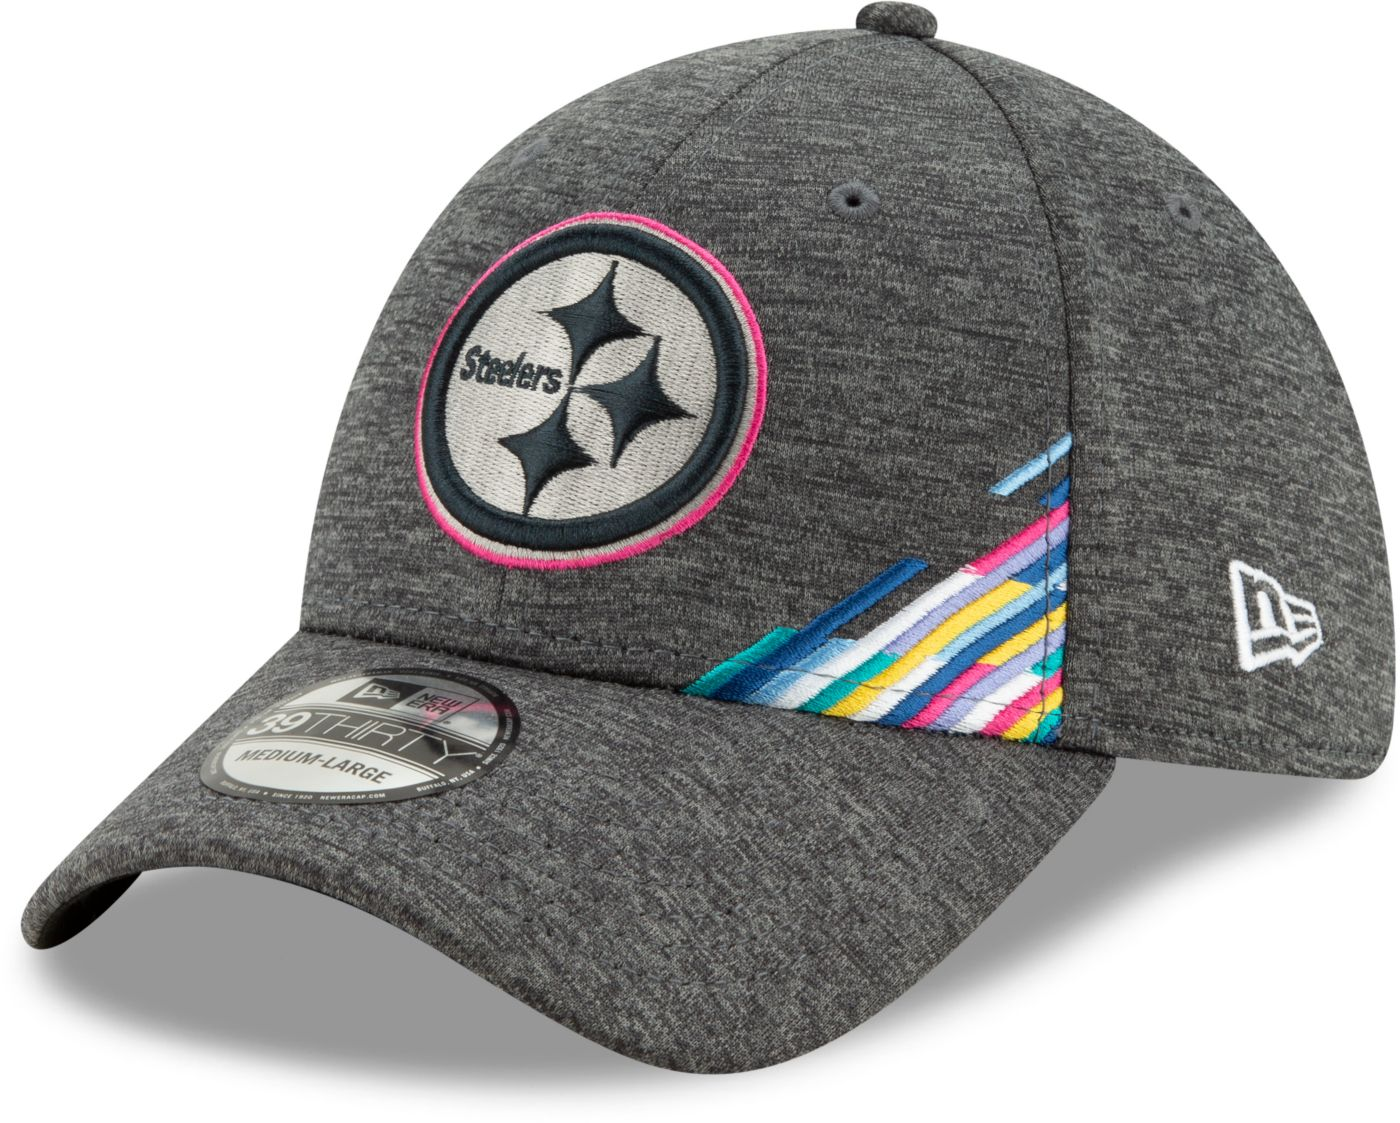 New Era Men's Pittsburgh Steelers Sideline Crucial Catch 39Thirty Graphite Stretch Fit Hat